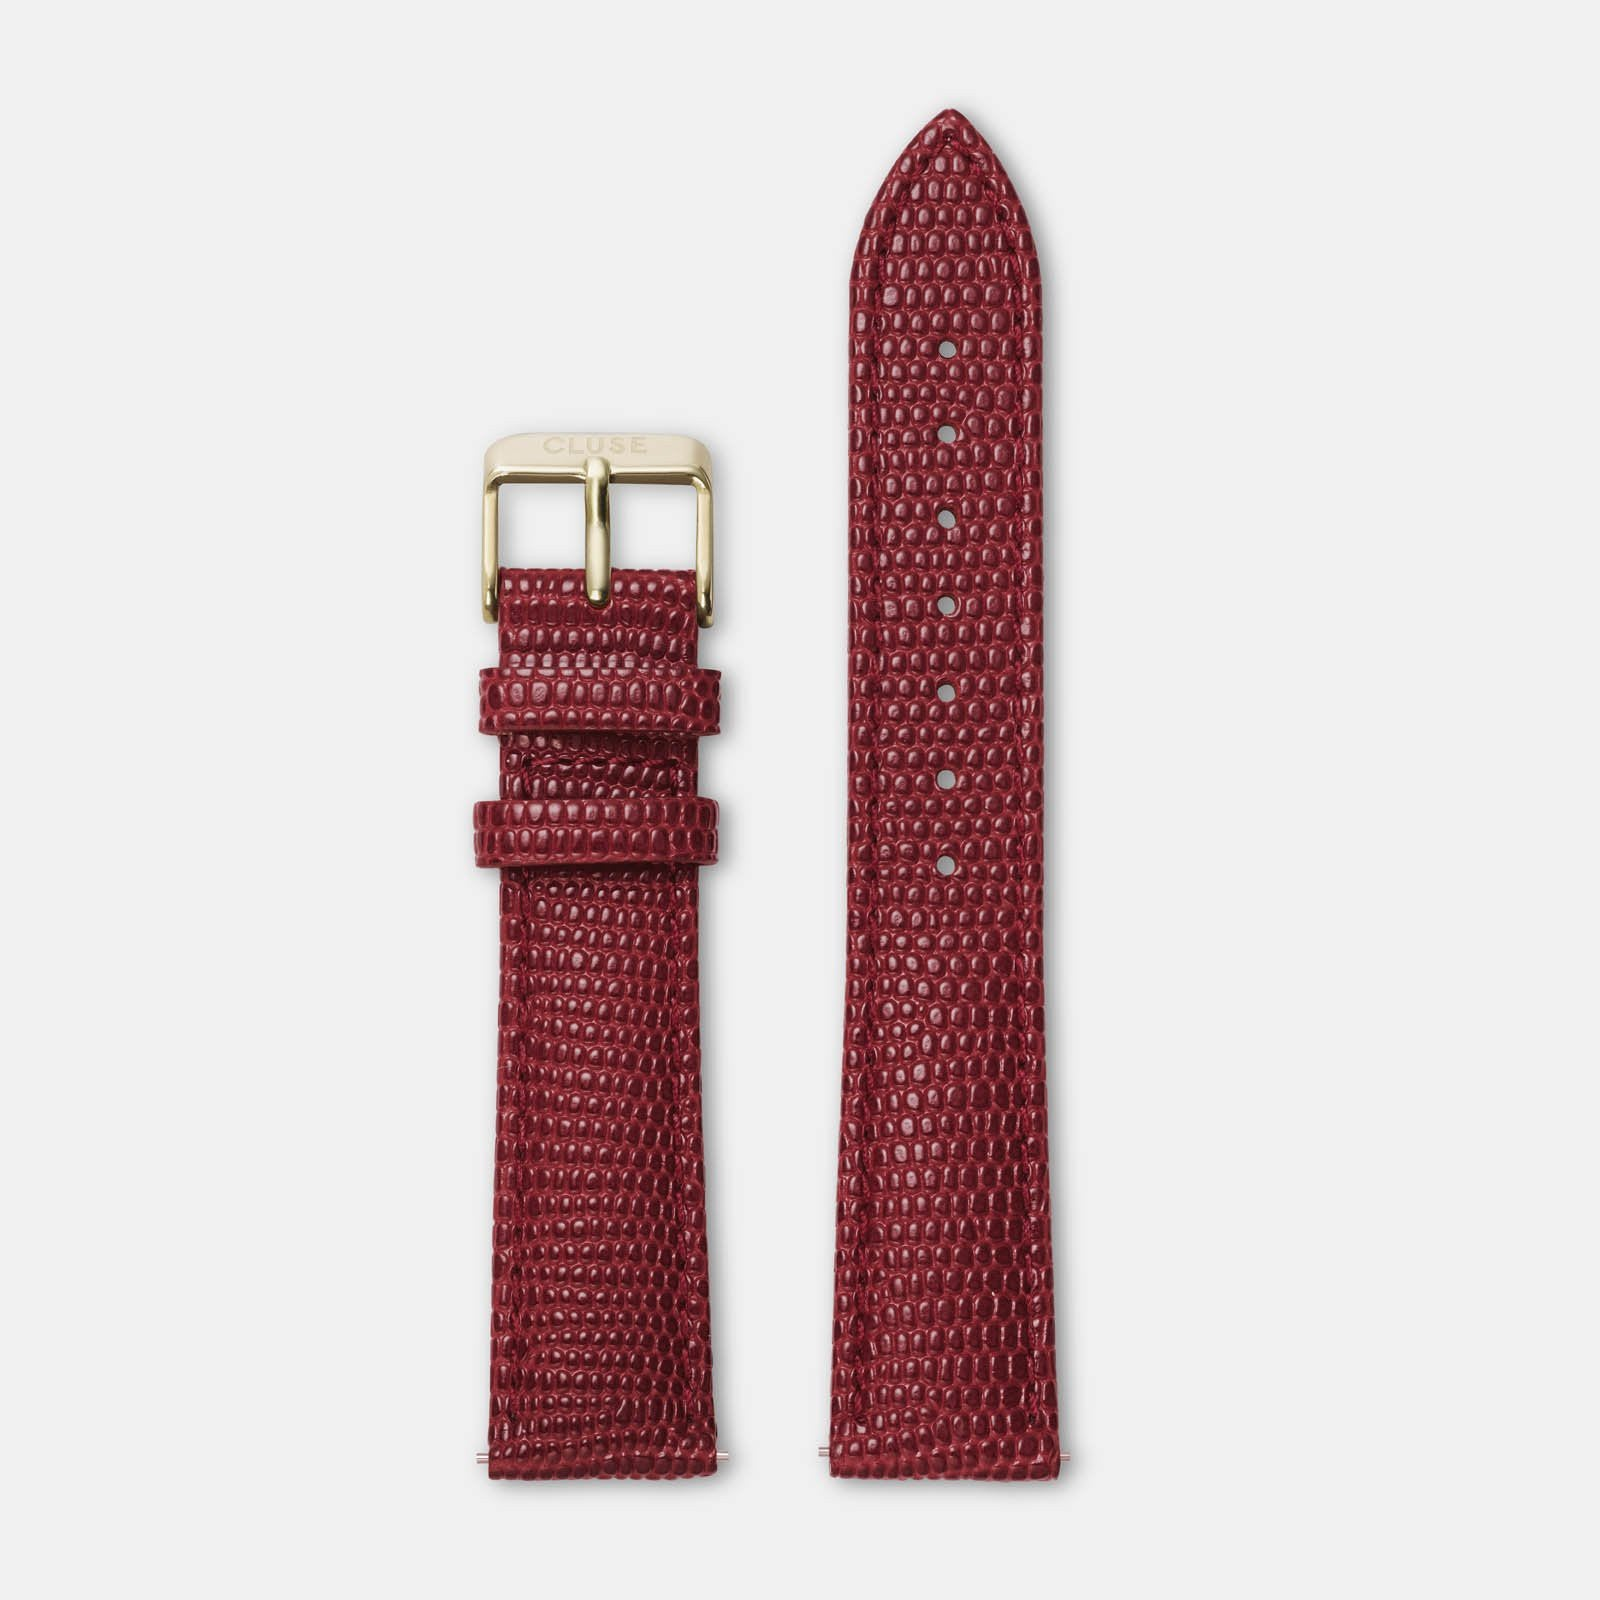 CLUSE 18 mm Strap Deep Red Lizard/Gold CLS082 - strap